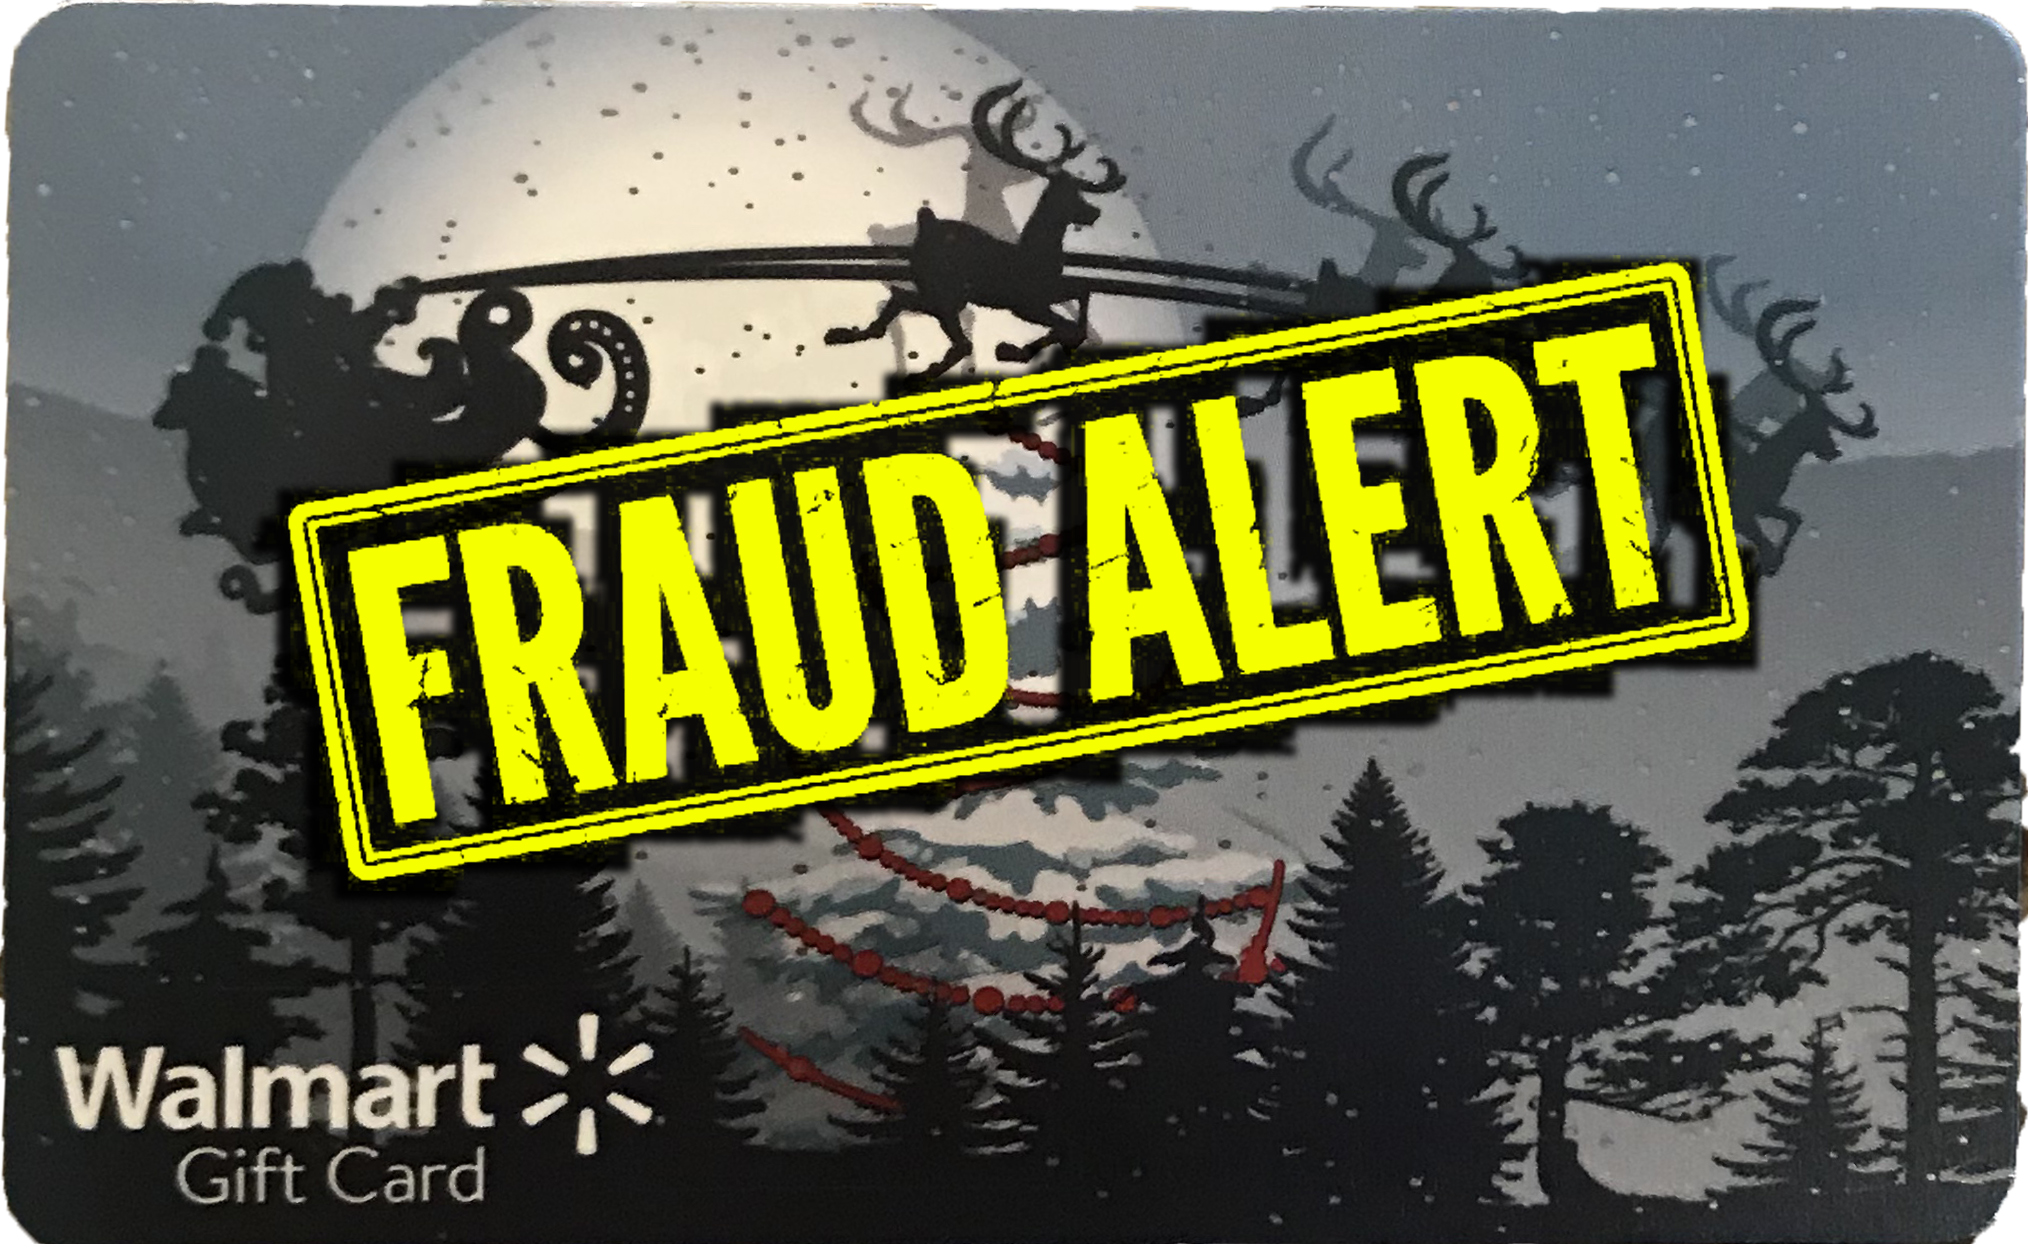 The Walmart Gift Card Fraud Scam That Walmart Doesnt Care